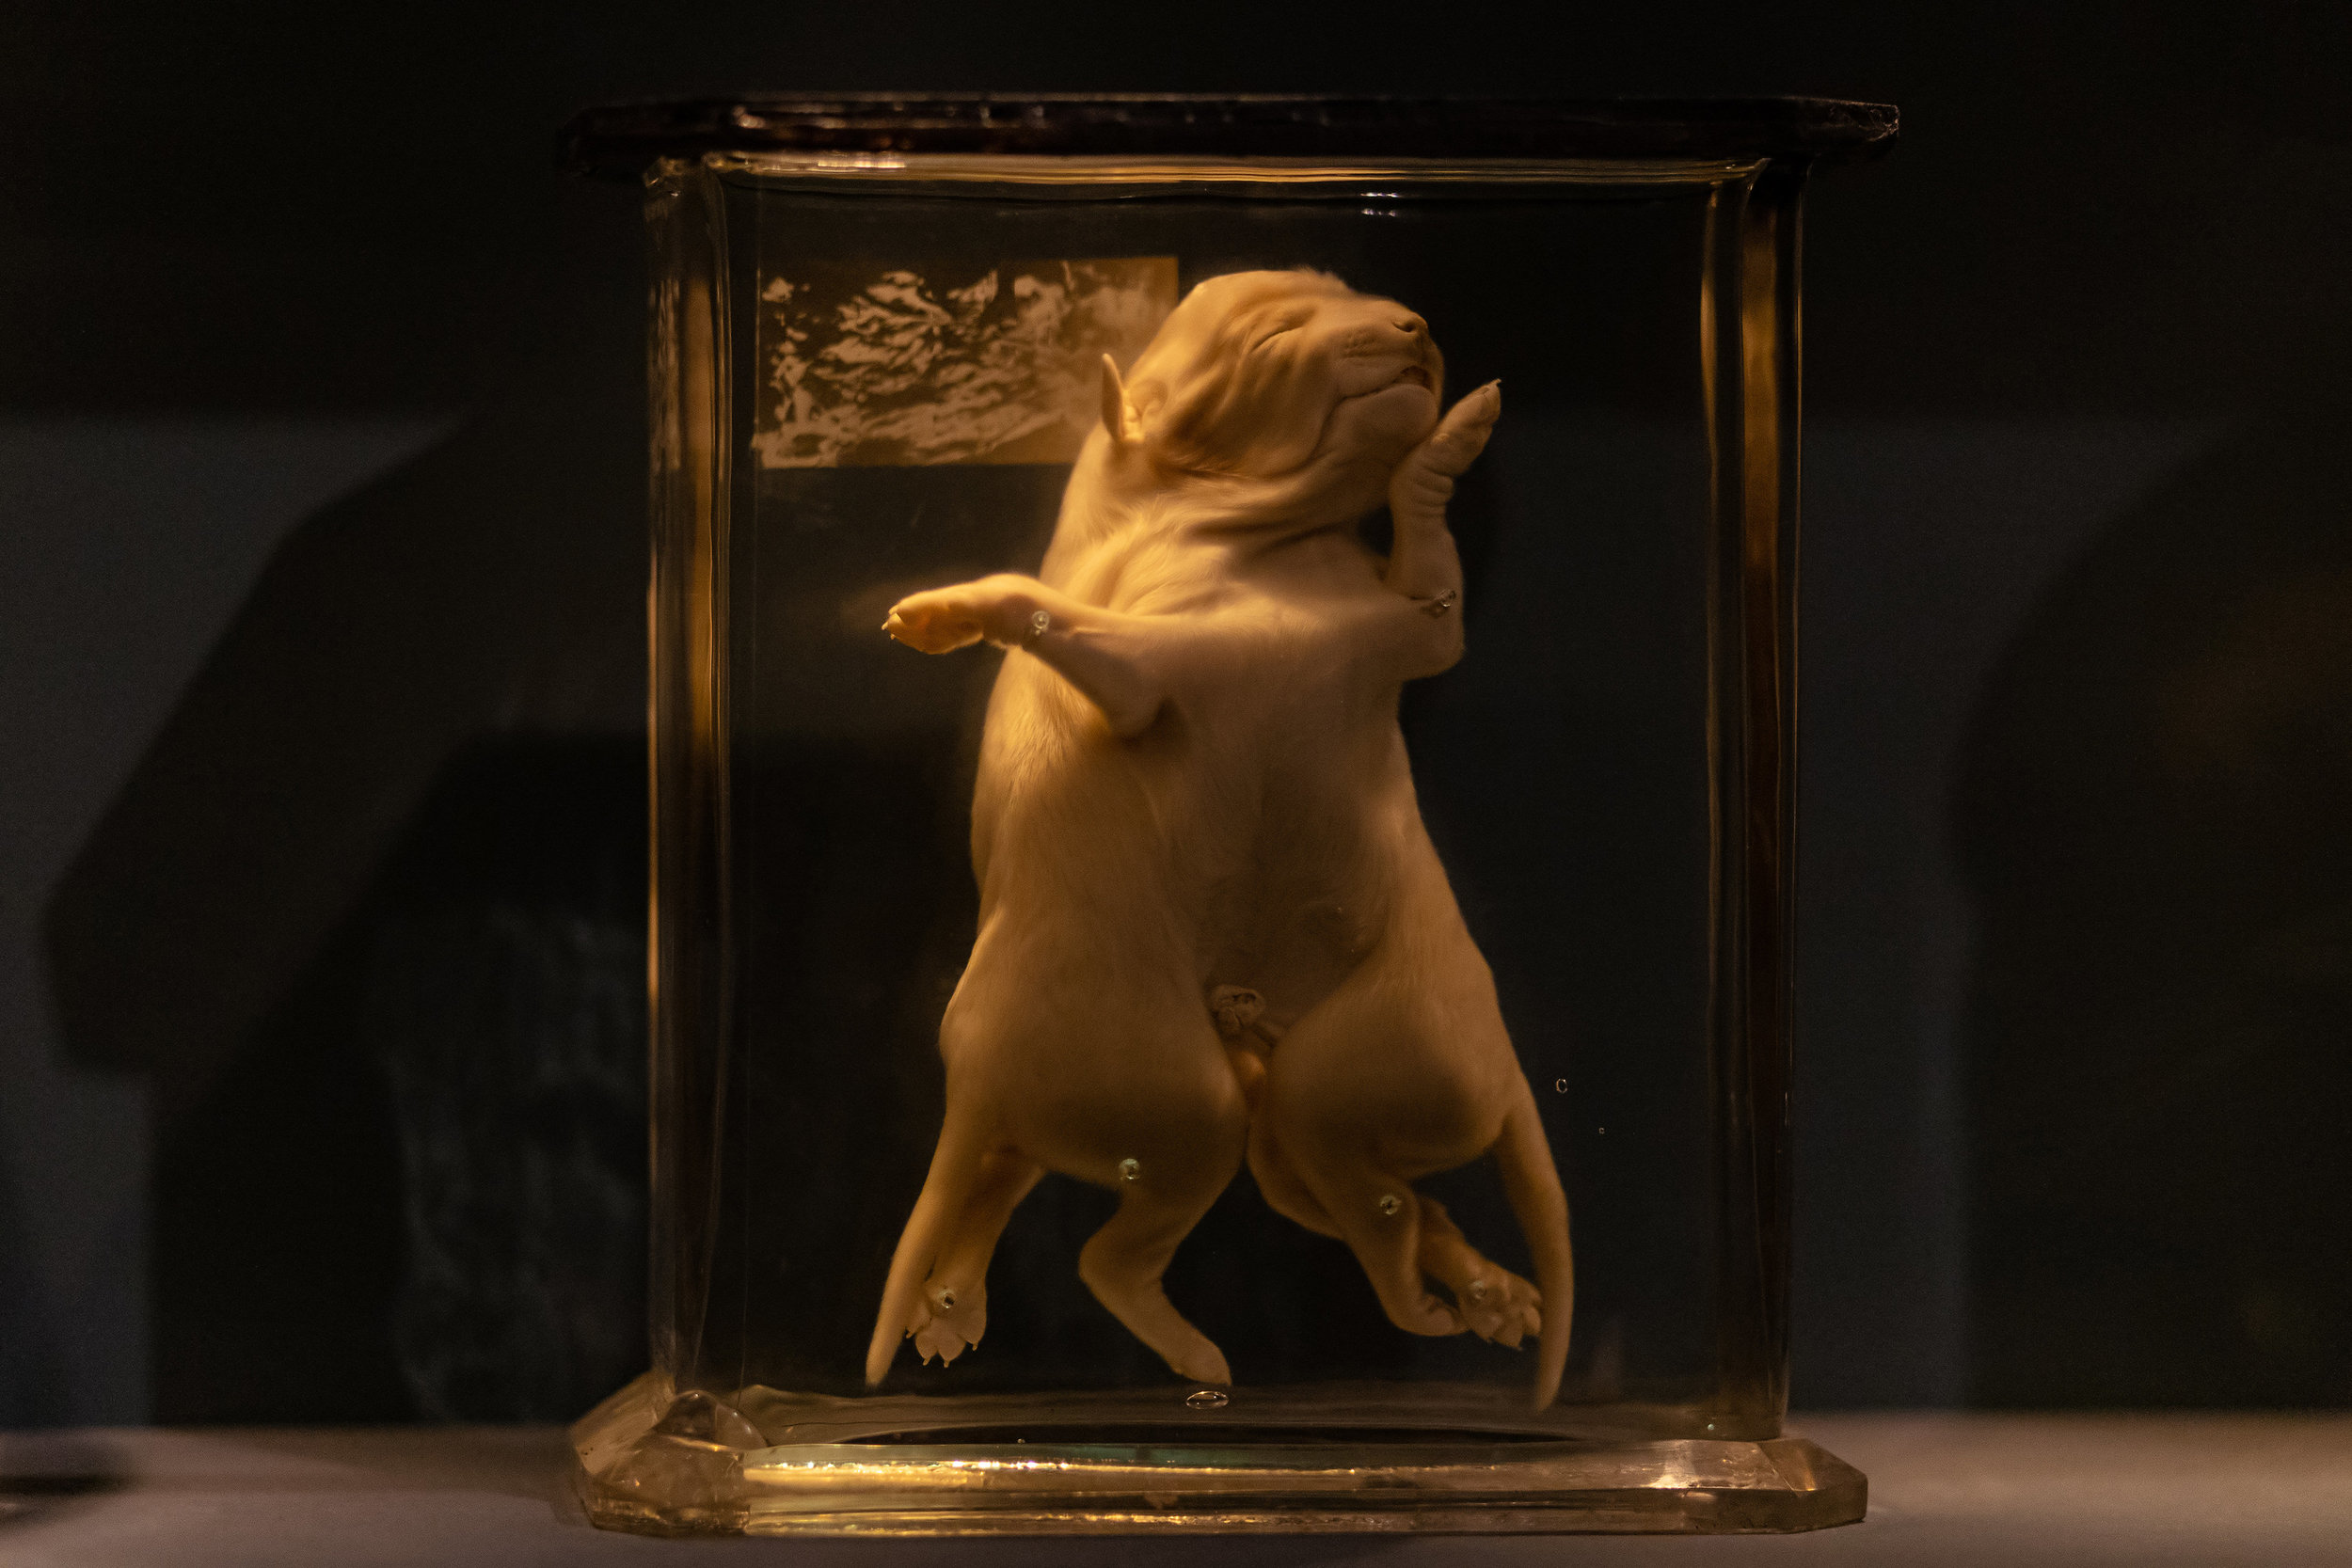 Display of a mutated specimen of dog at the Naturkundemuseum, Berlin.